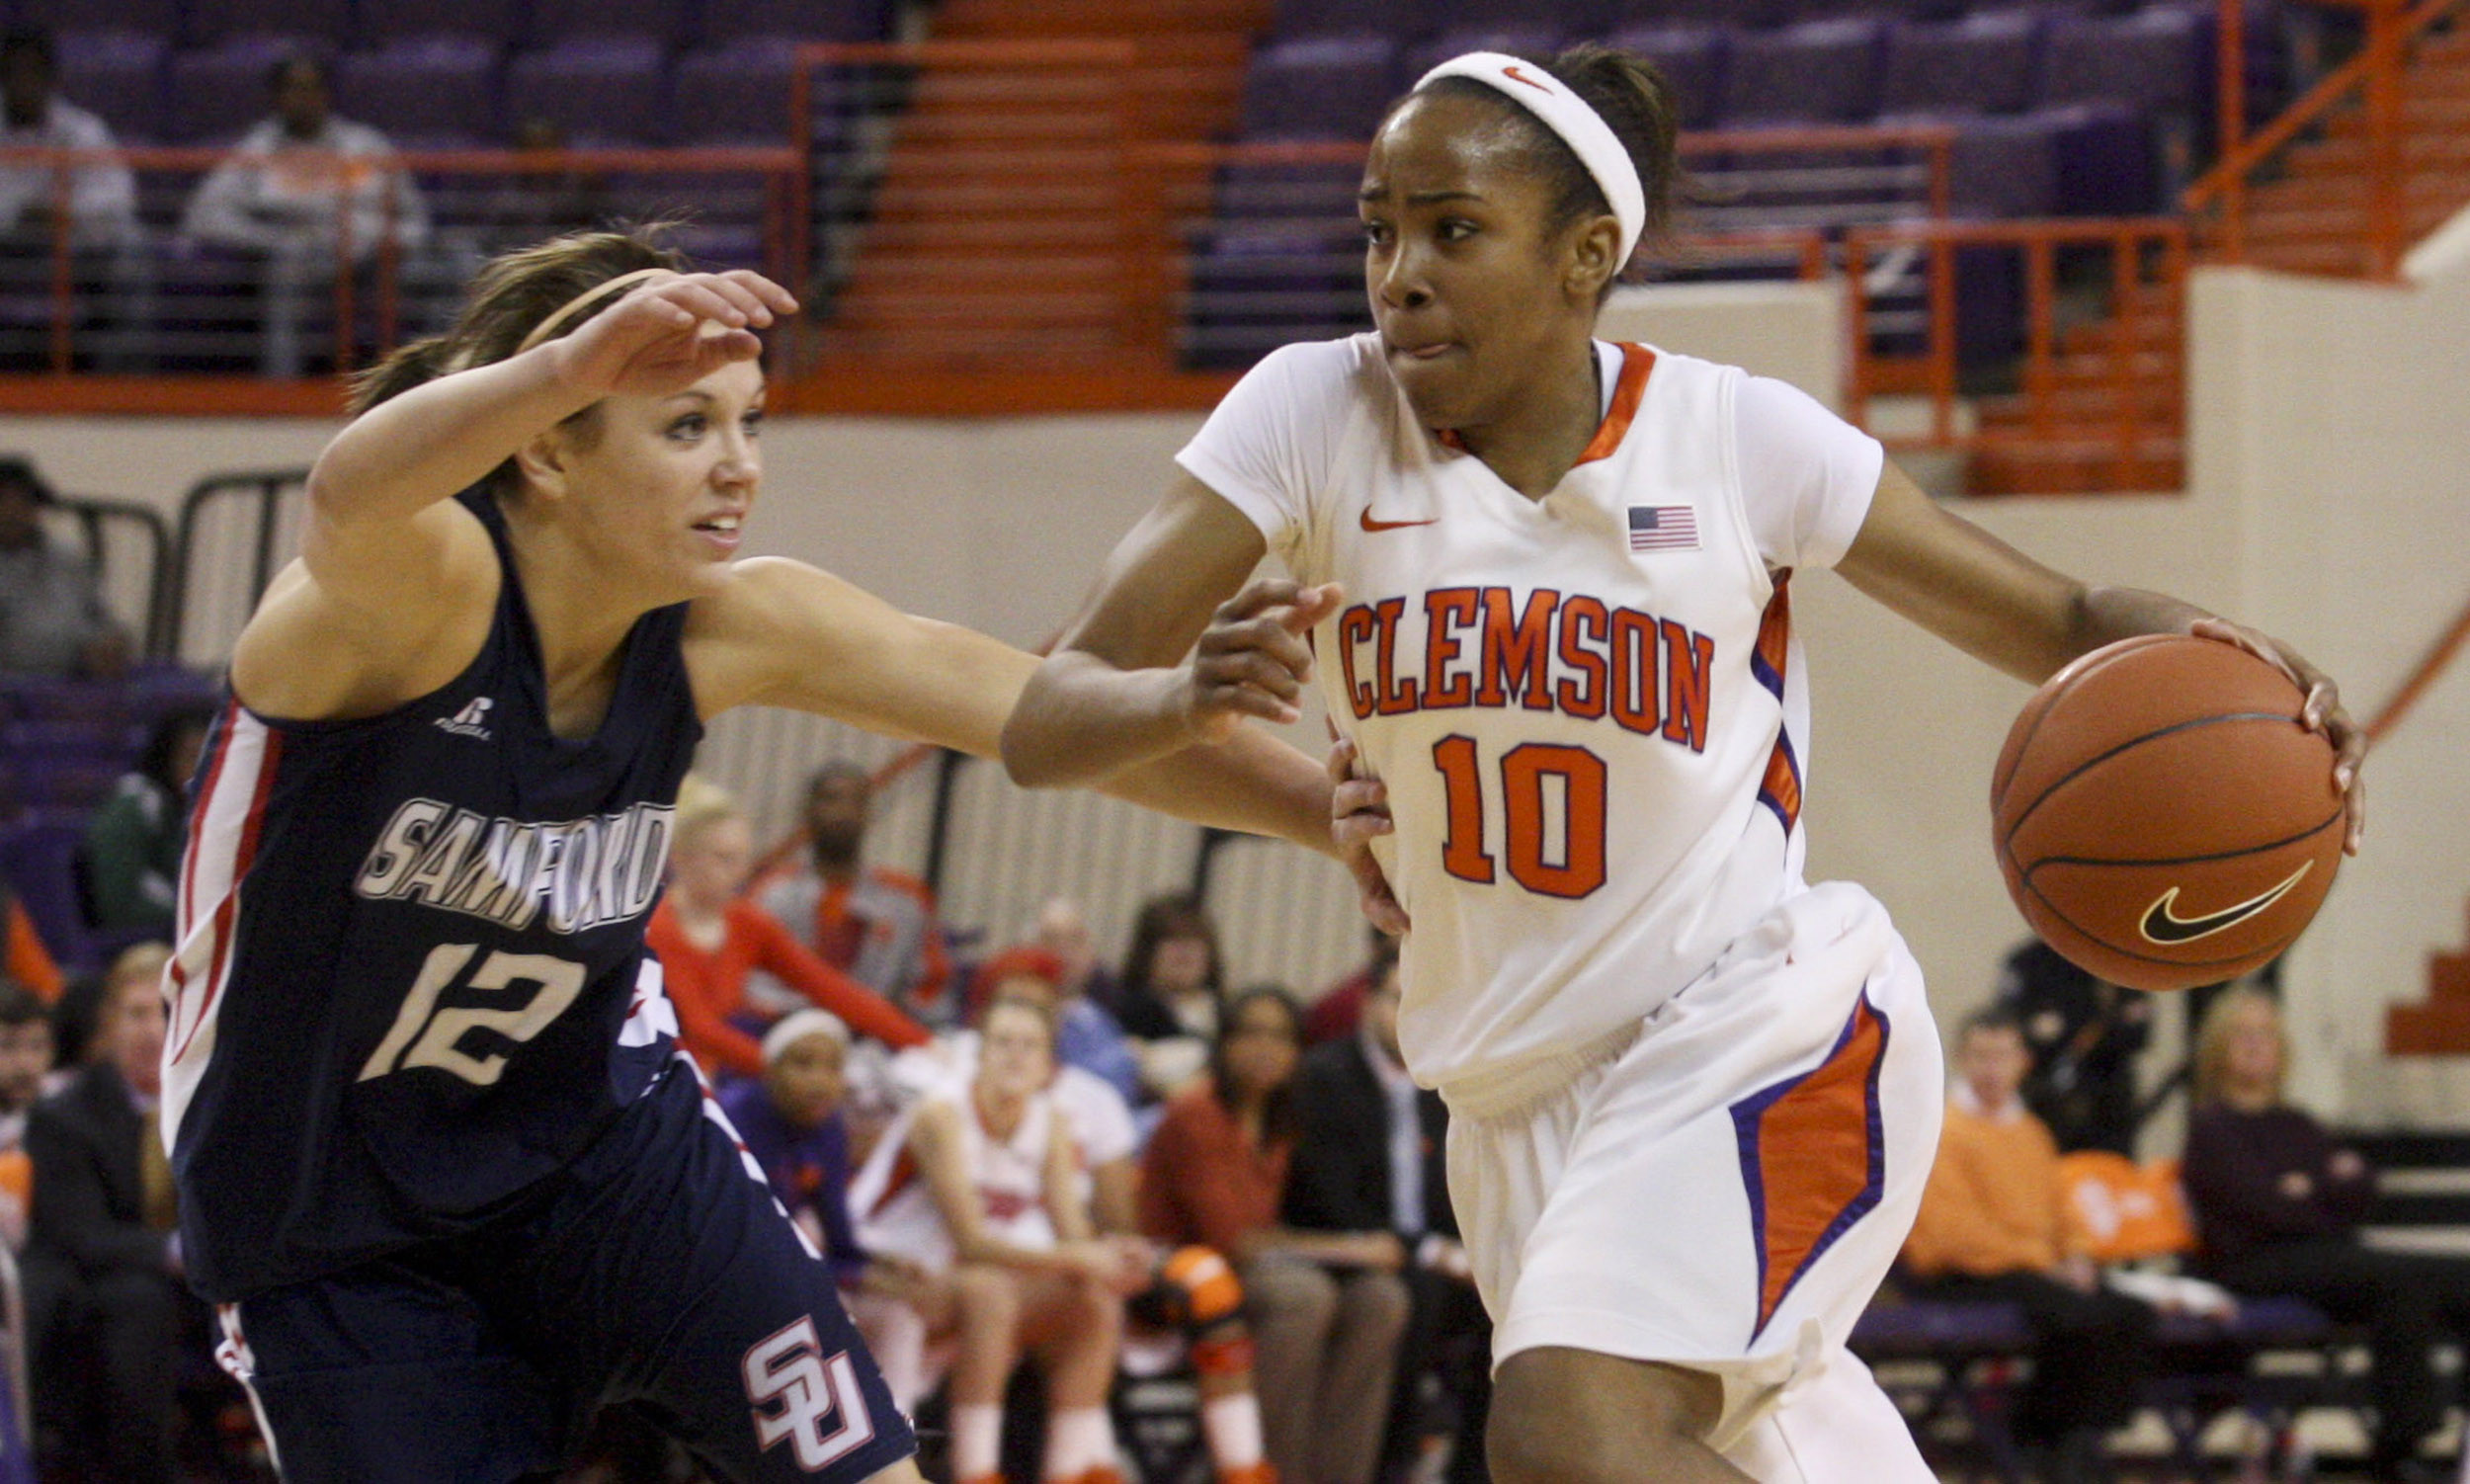 Clemson Falls at No. 4/5 Duke Thursday